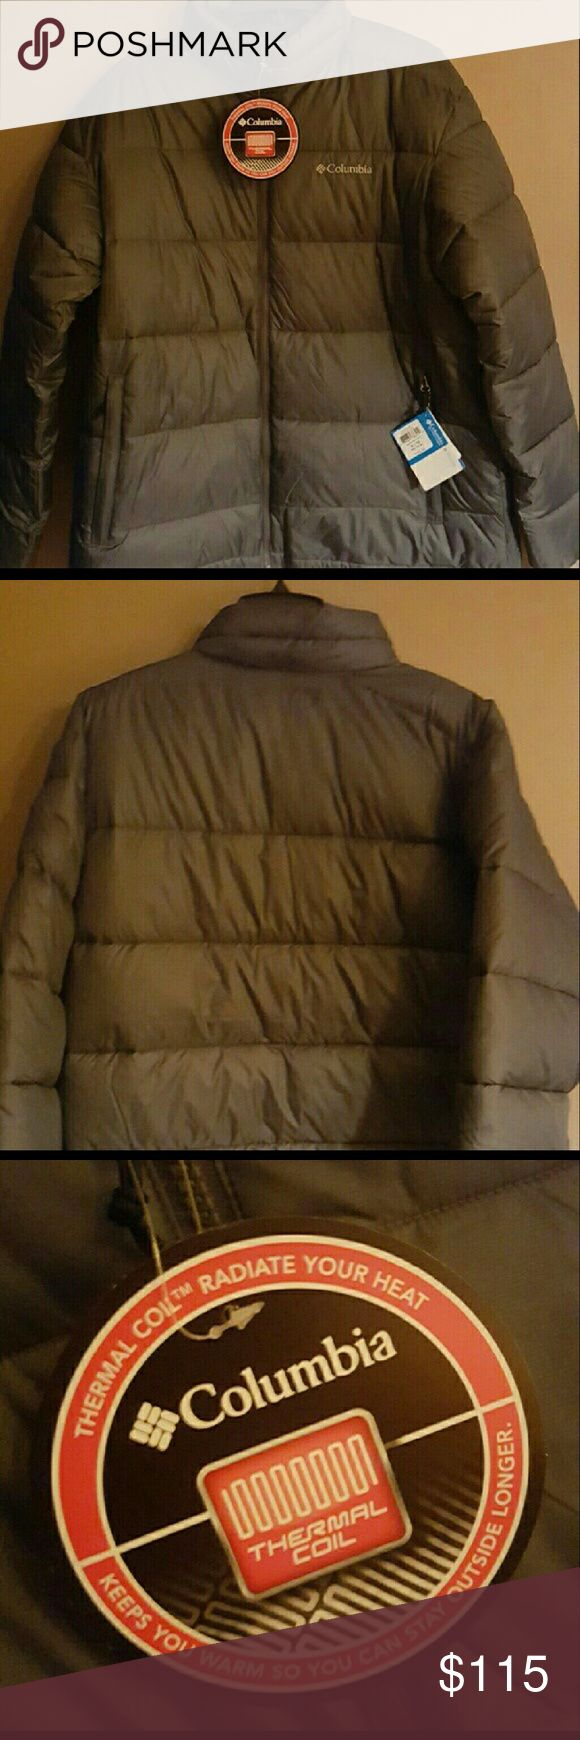 Men's Columbia Coat XL Brand new with tags. Fully zippered front. Men's size XL. Thermal Coil. Columbia Jackets & Coats Performance Jackets